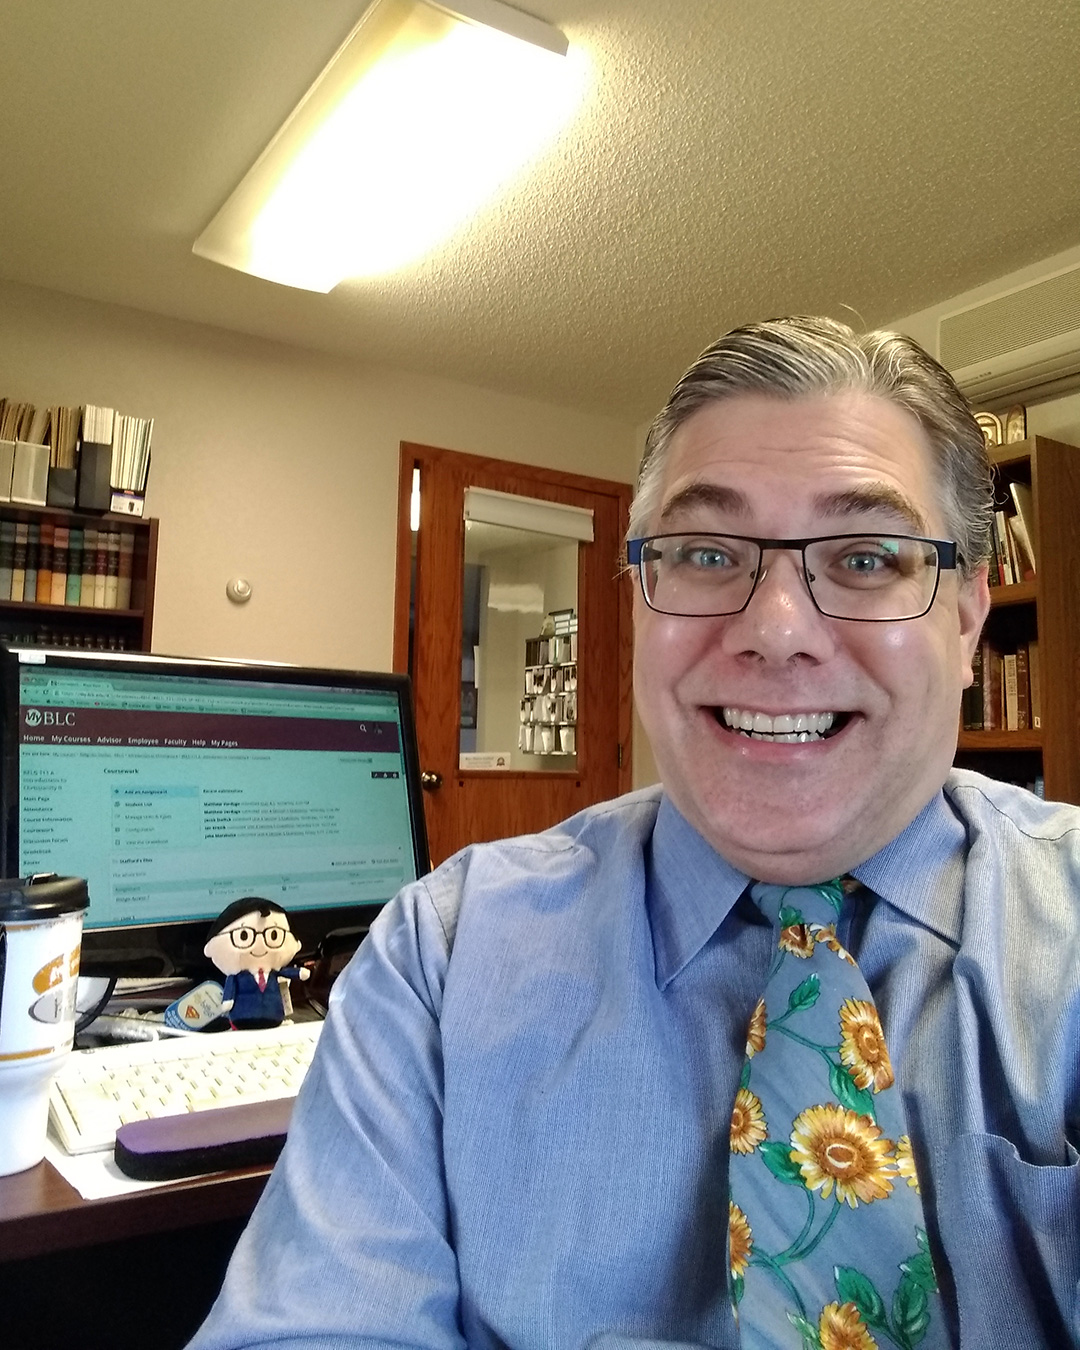 Rev. Shawn Stafford at his home office